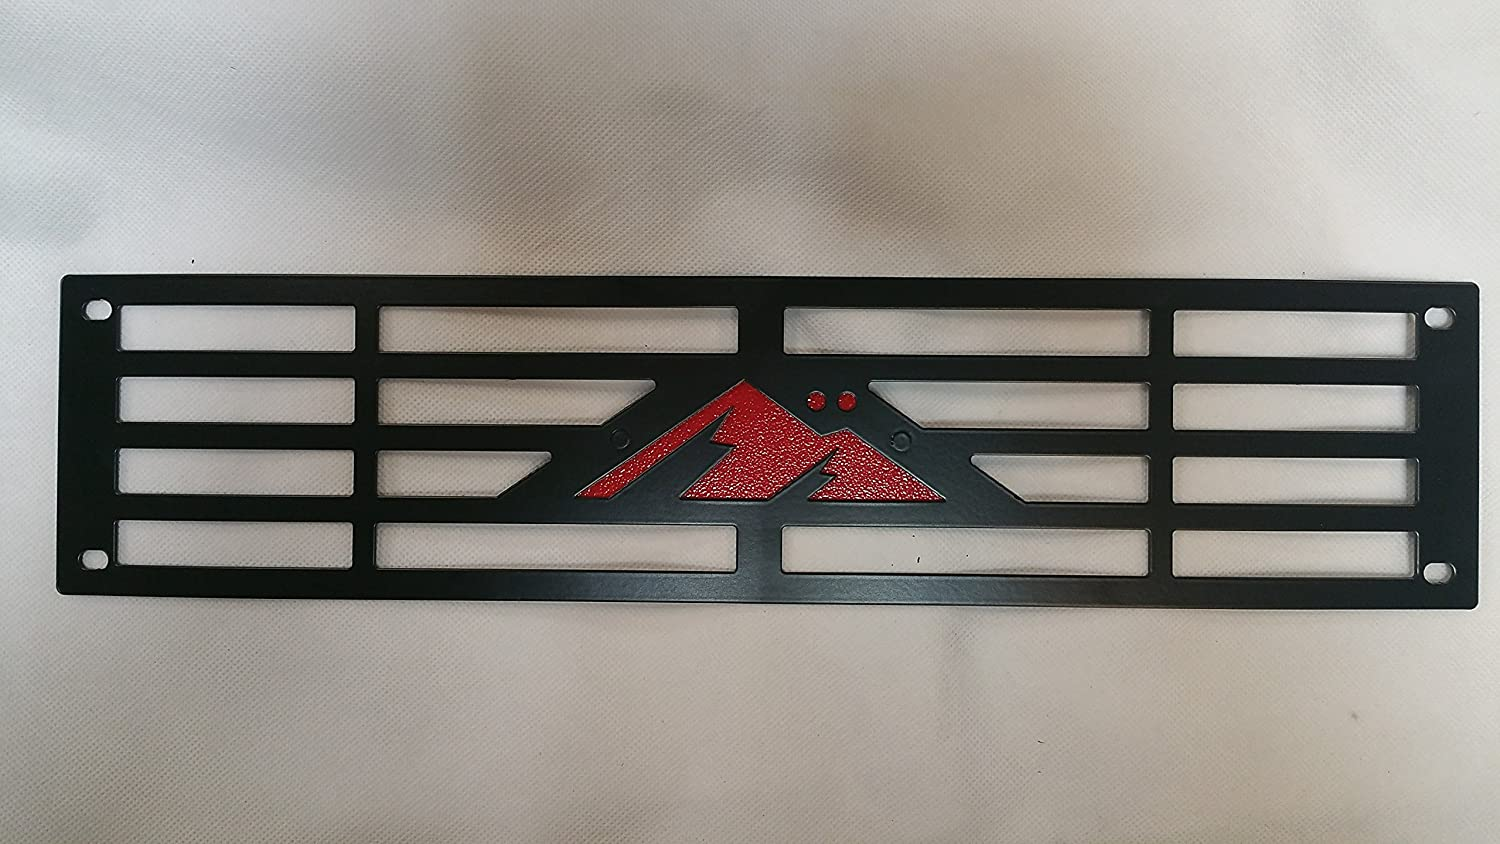 Mountains2Metal M2M Mountain Logo Edition Bumper Grille Insert with RED Backing Plate Compatible with 2015-2019 Chevy Silverado 2500 3500 HD M2M #400-120-2